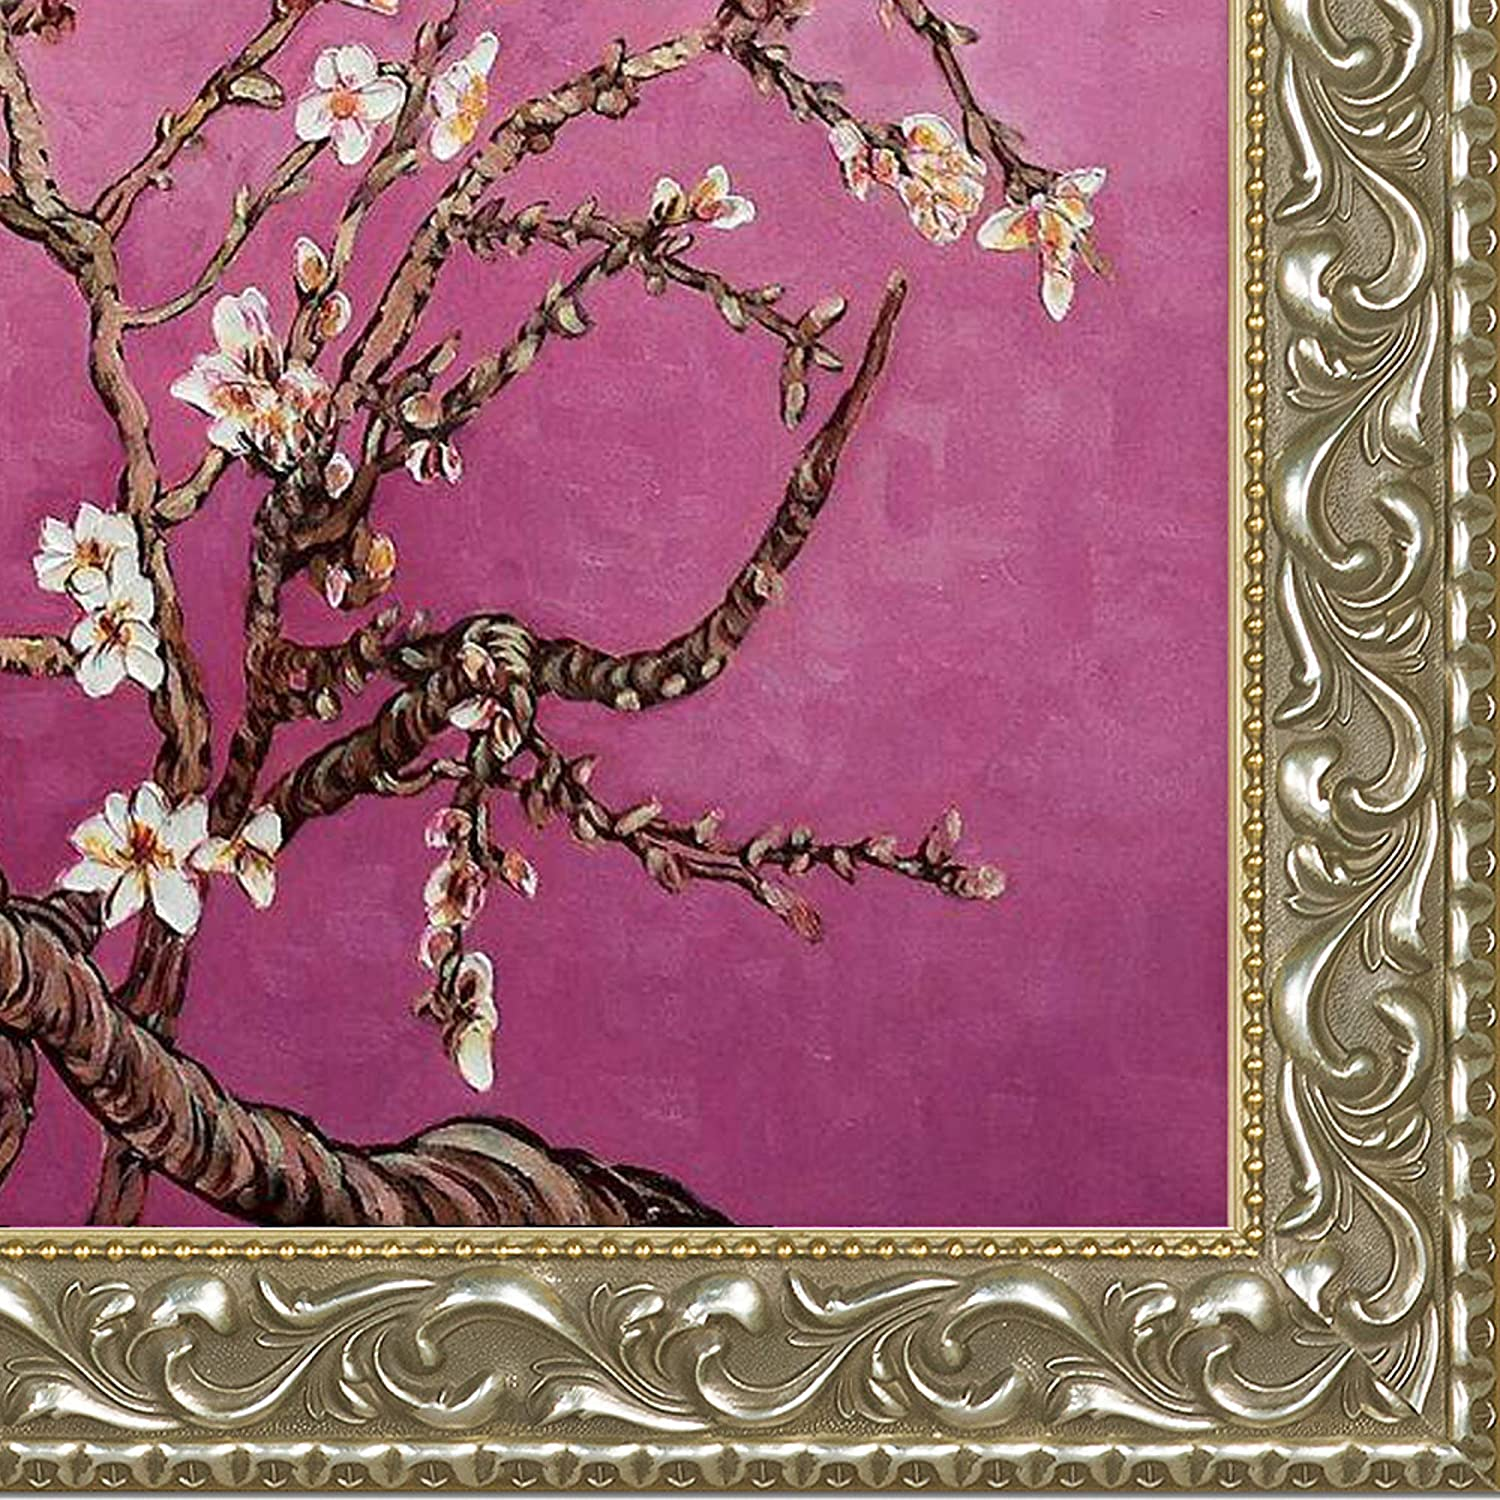 Magenta Framed Hand Painted Original Artwork with Rococo Silver Frame OverstockArt La Pastiche VG7029-FR-N11620X24 Branches Of An Almond Tree In Blossom